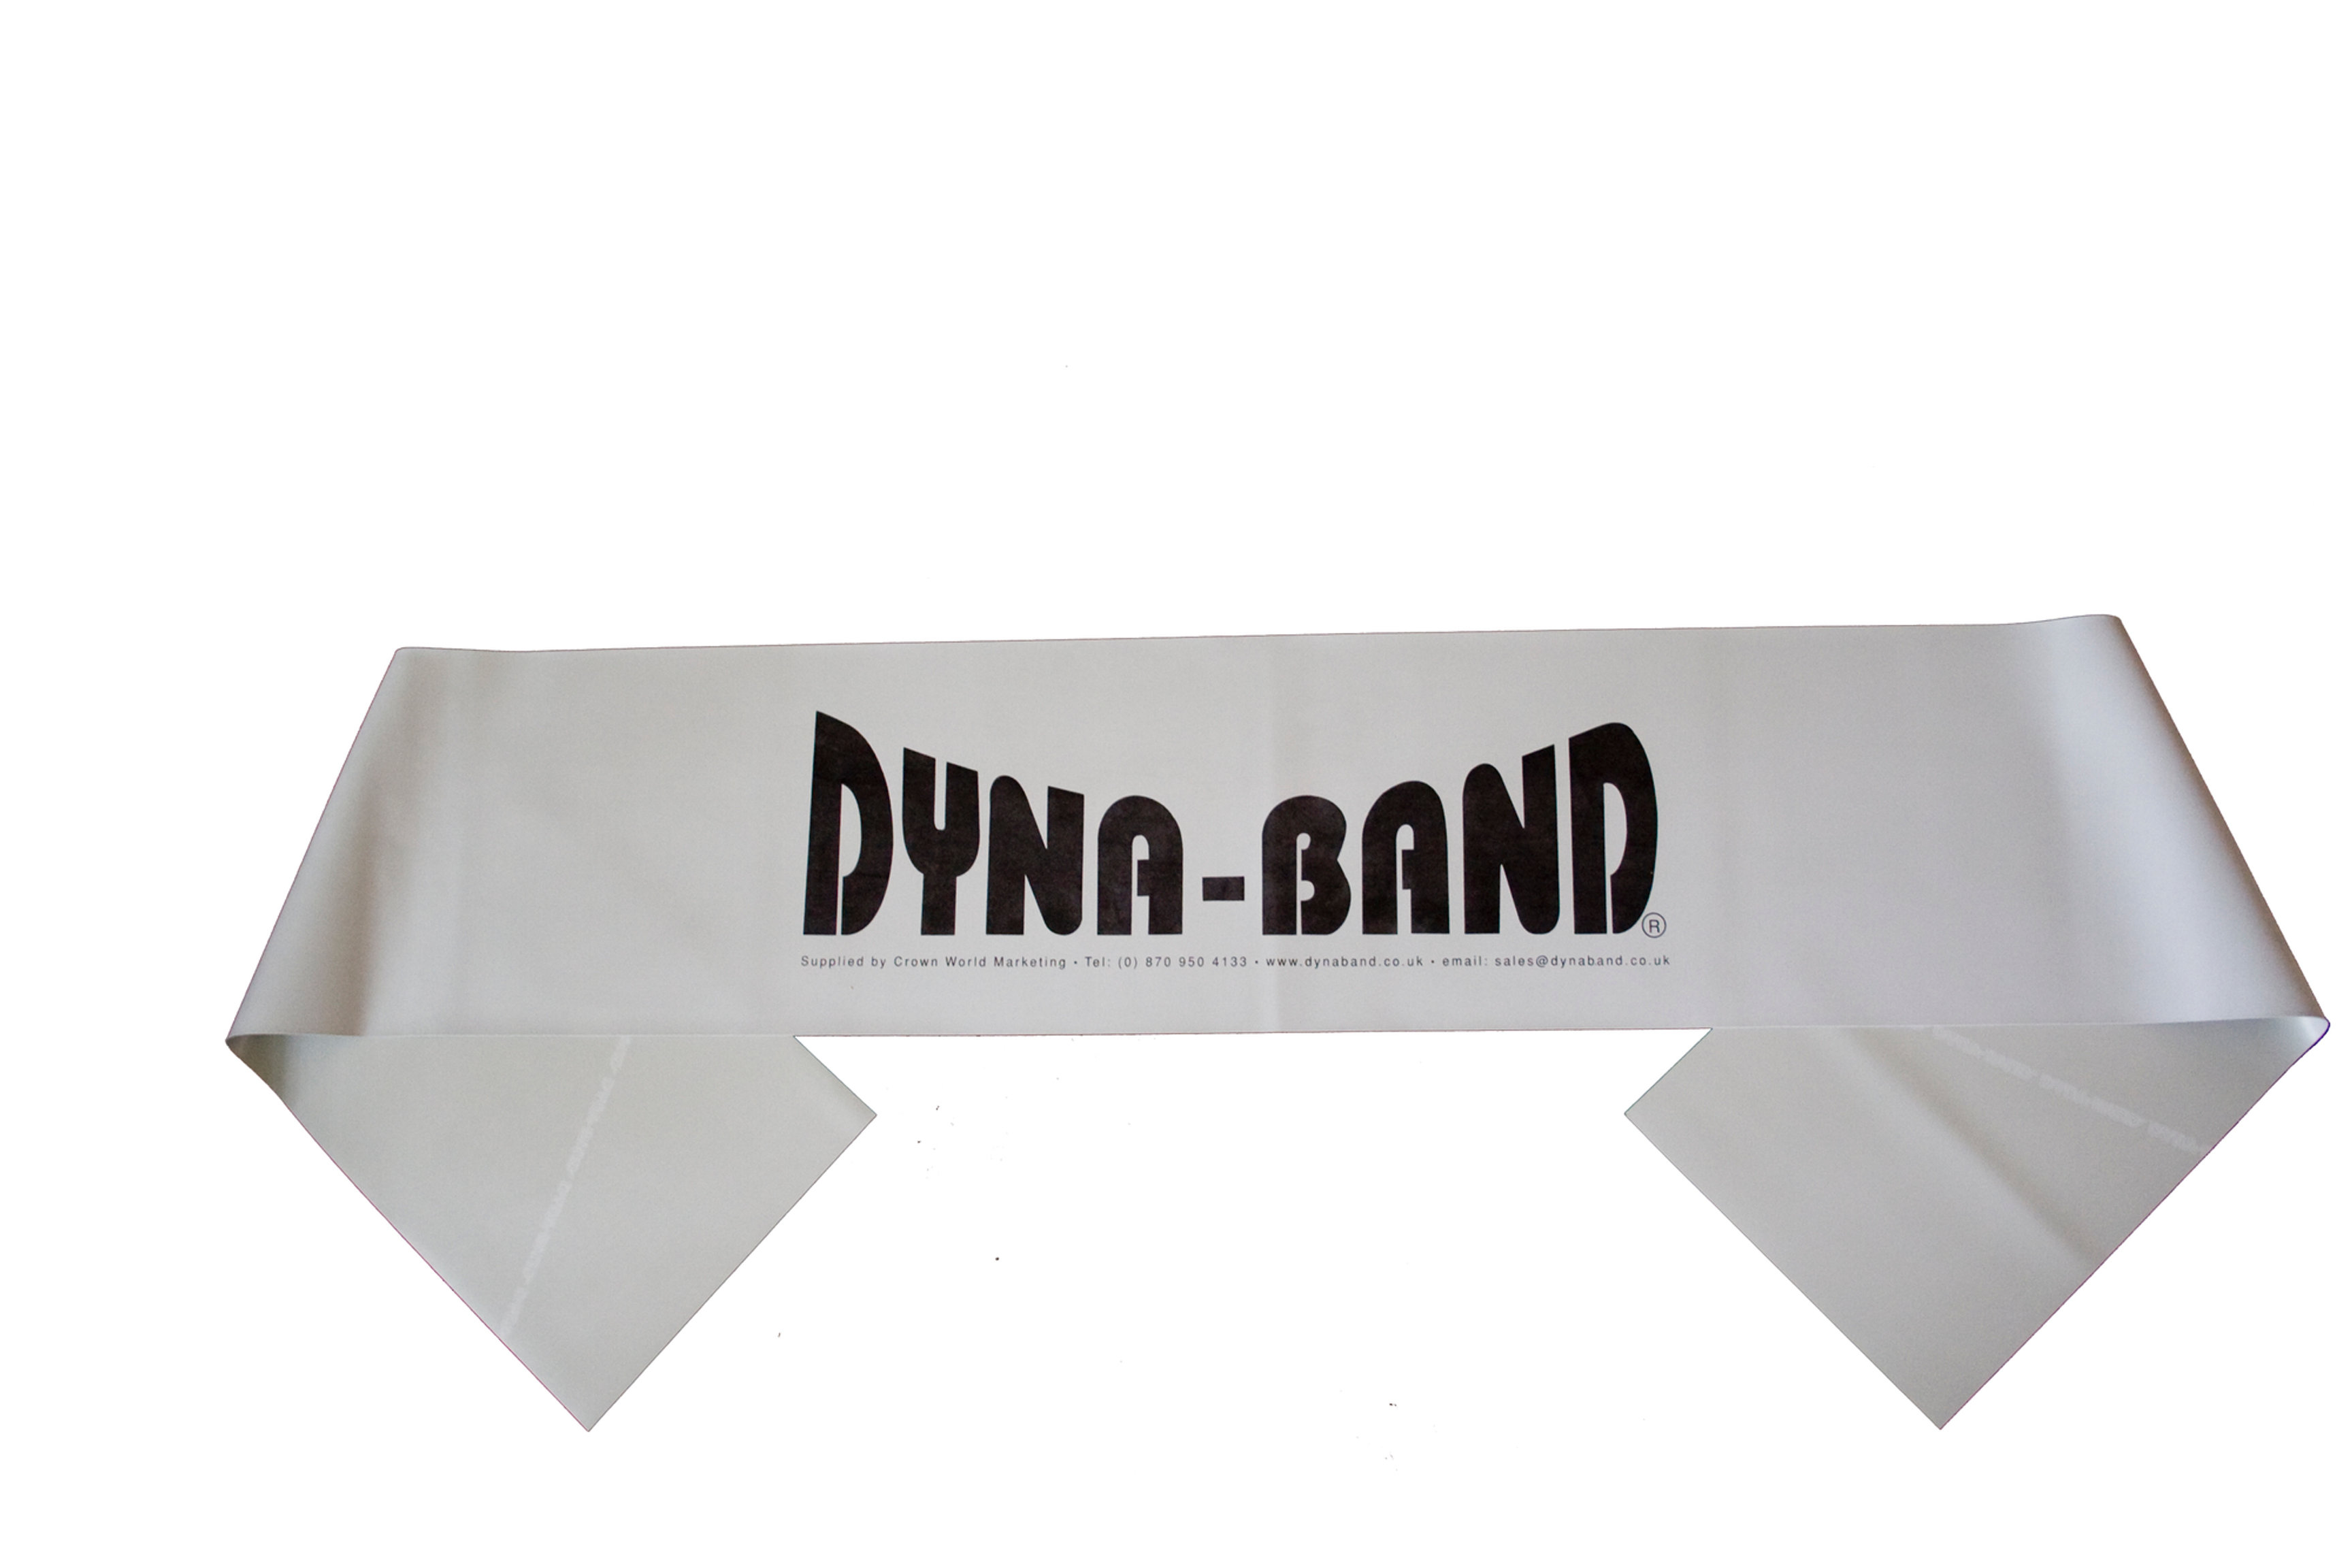 Resistance Band Ideal For Home Exercise CSA1 Dyna-Band Grey Extra Strong